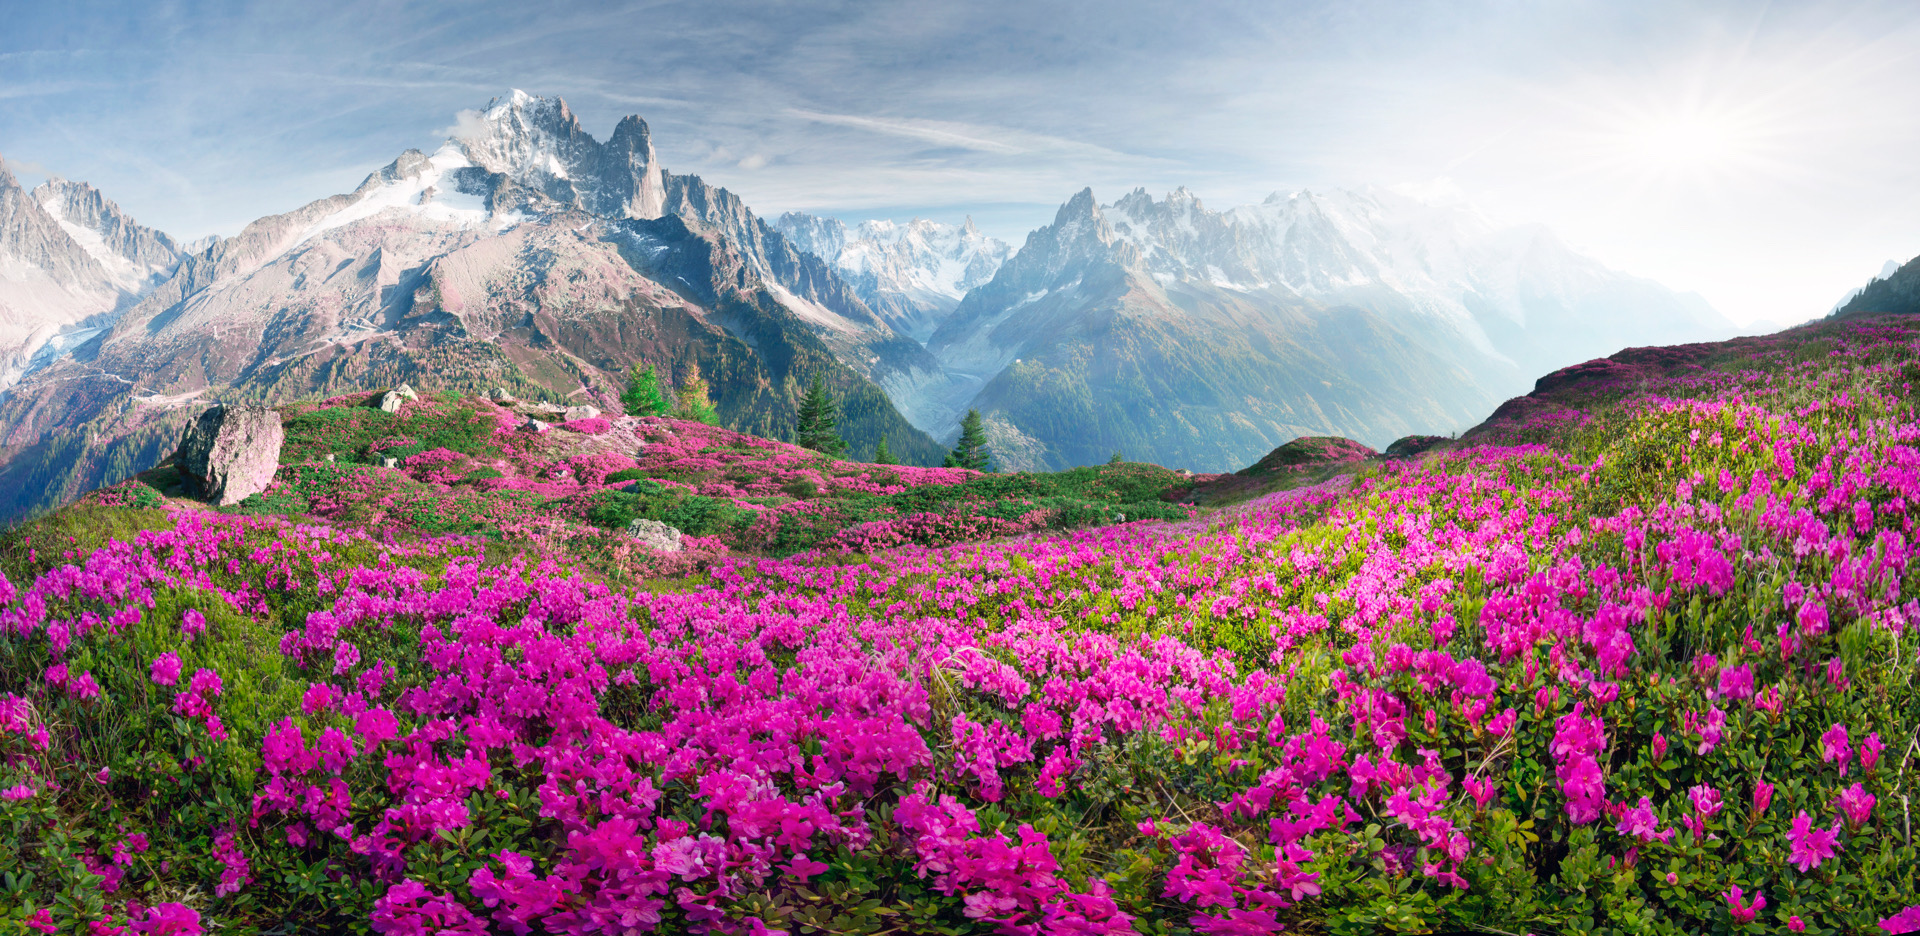 Chamonix in Savoy, a perfect choice for summer holidays